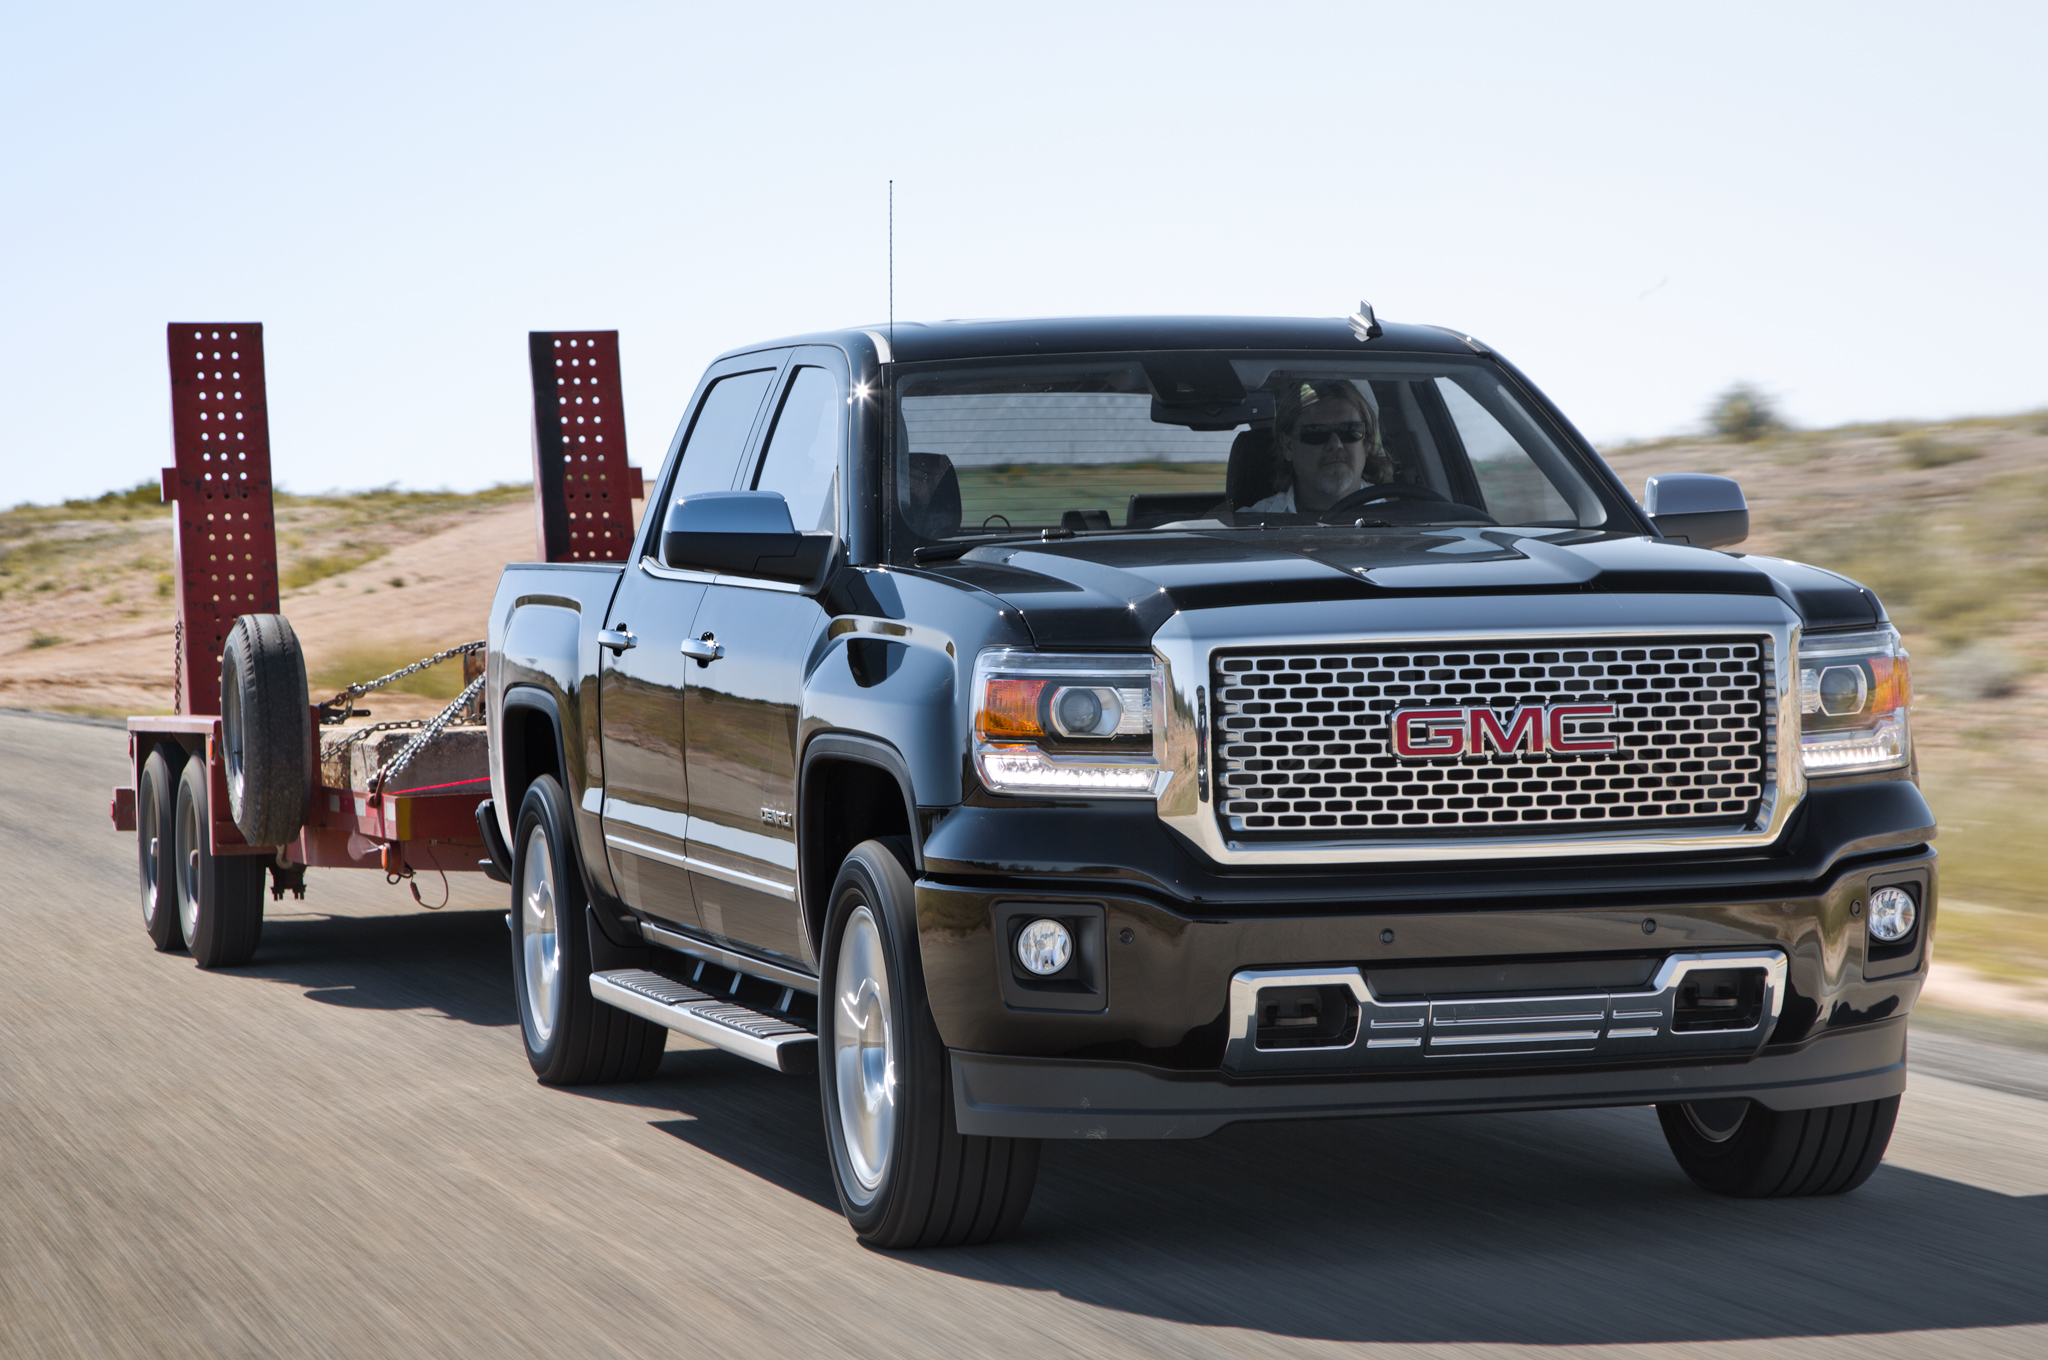 2014 GMC Sierra Denali photo - 1